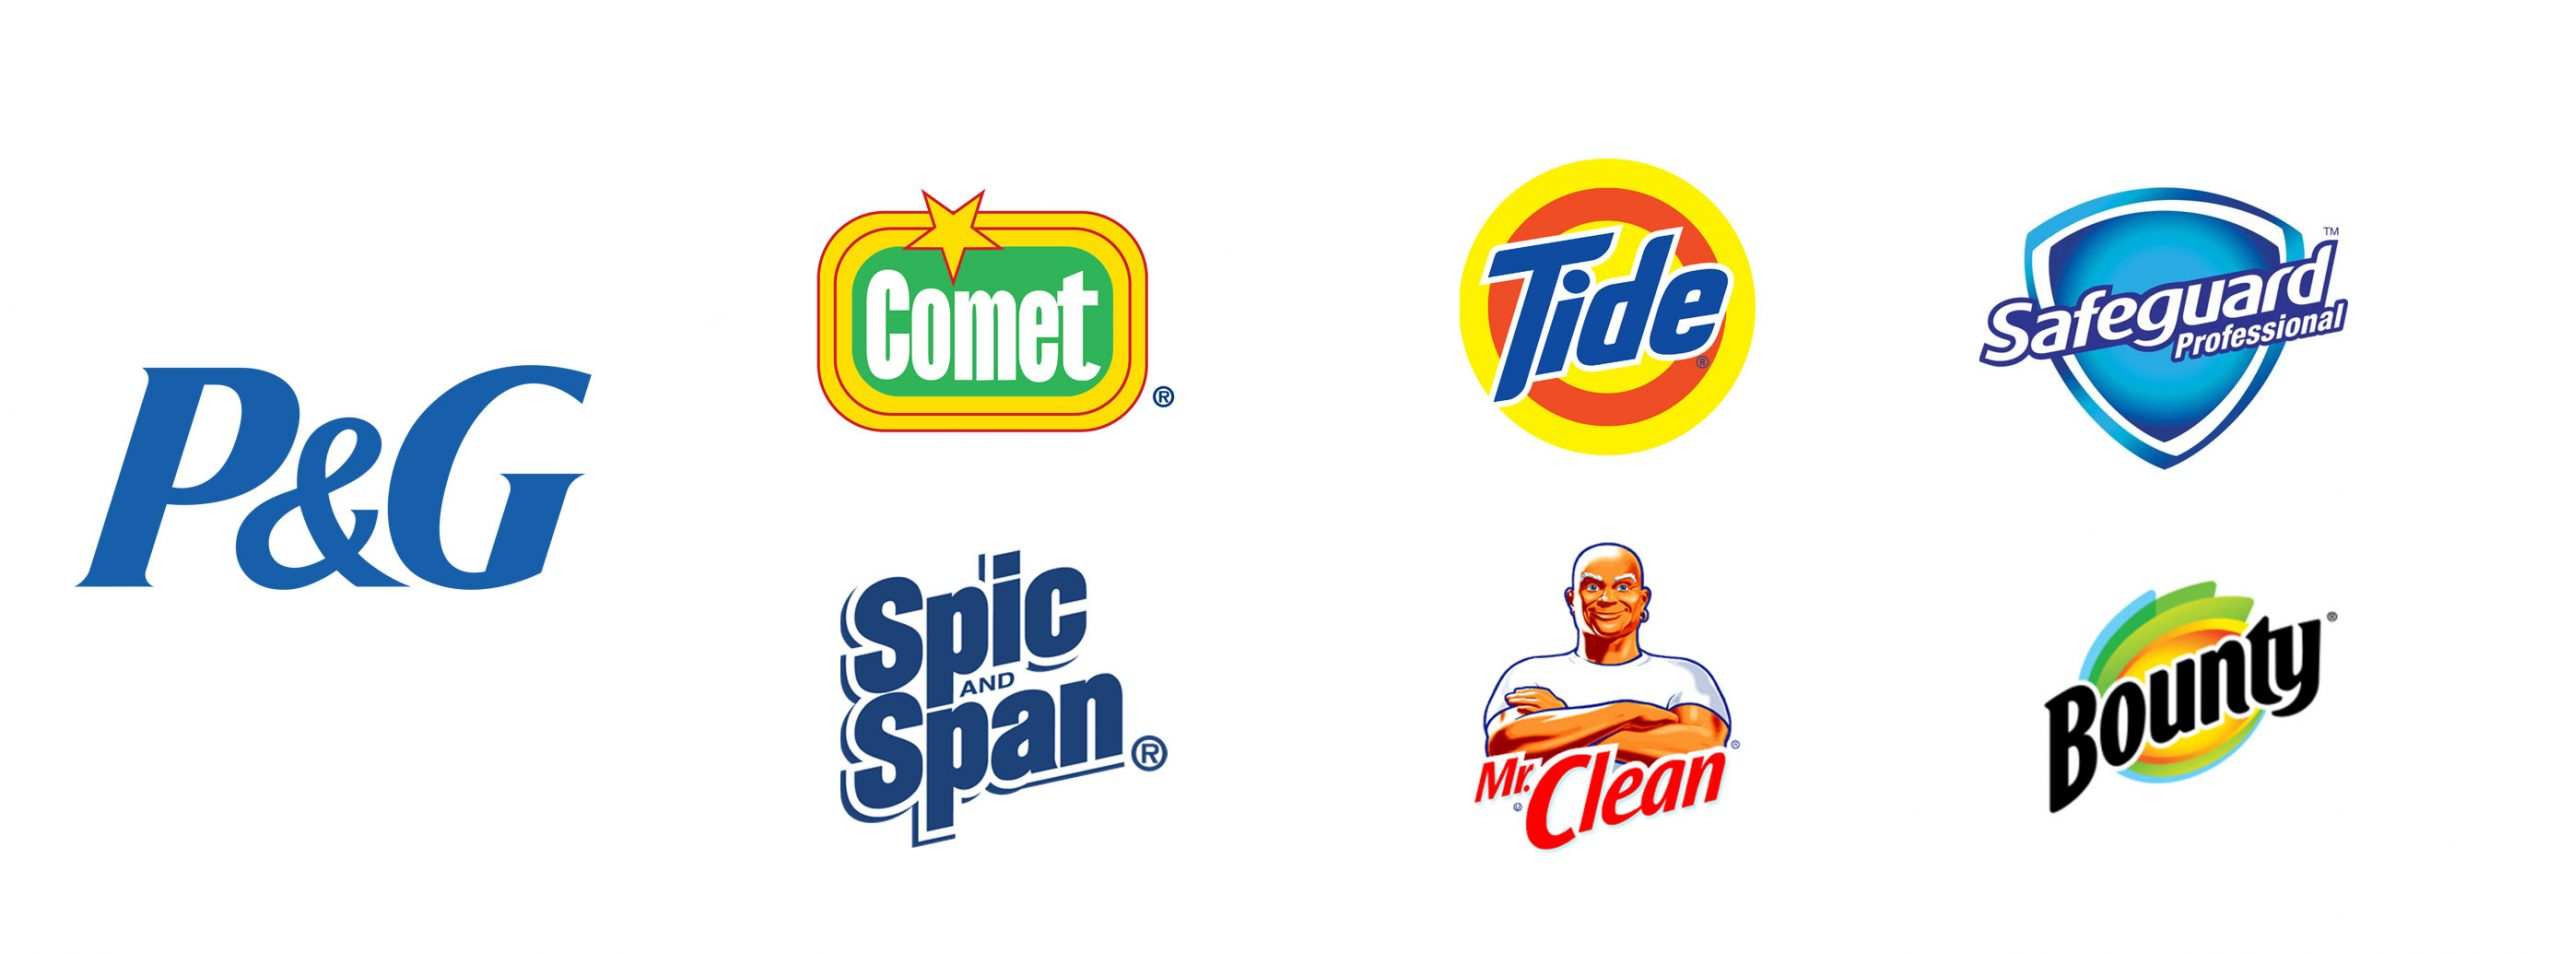 P&G: The House of Brands model